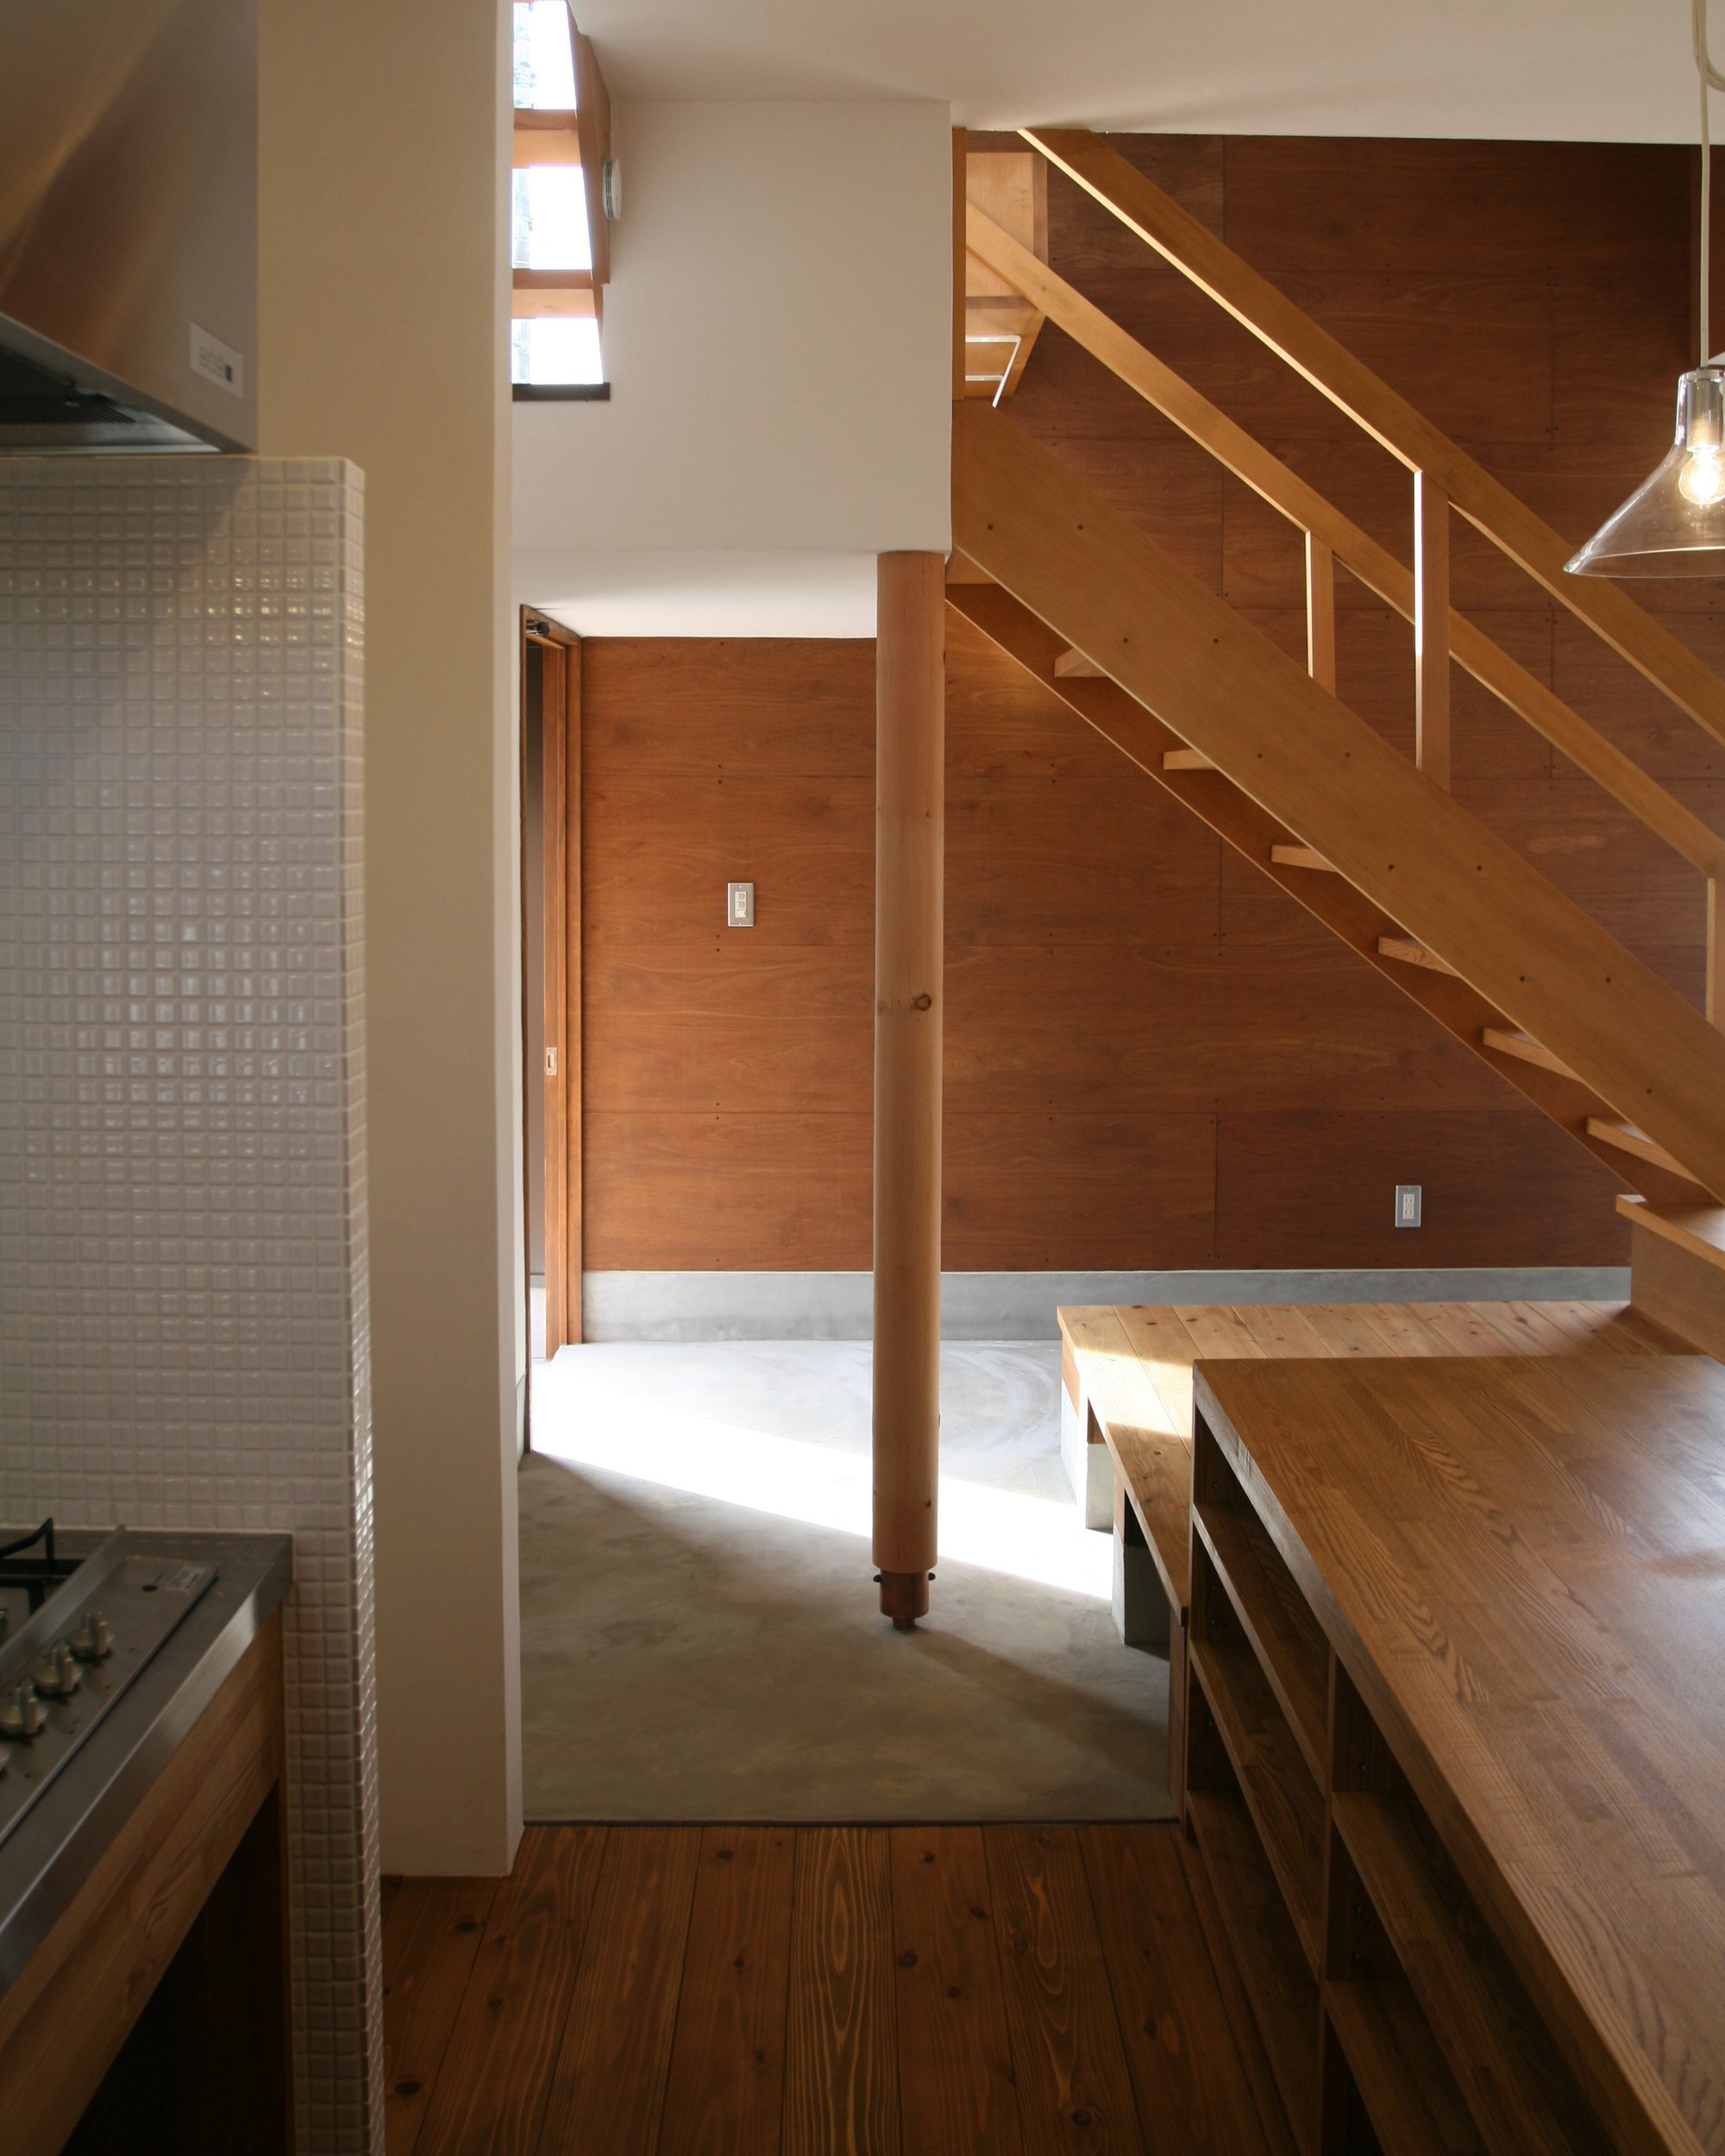 Kamo House - a.un architects - Gifu - Kitchen - Humble Homes